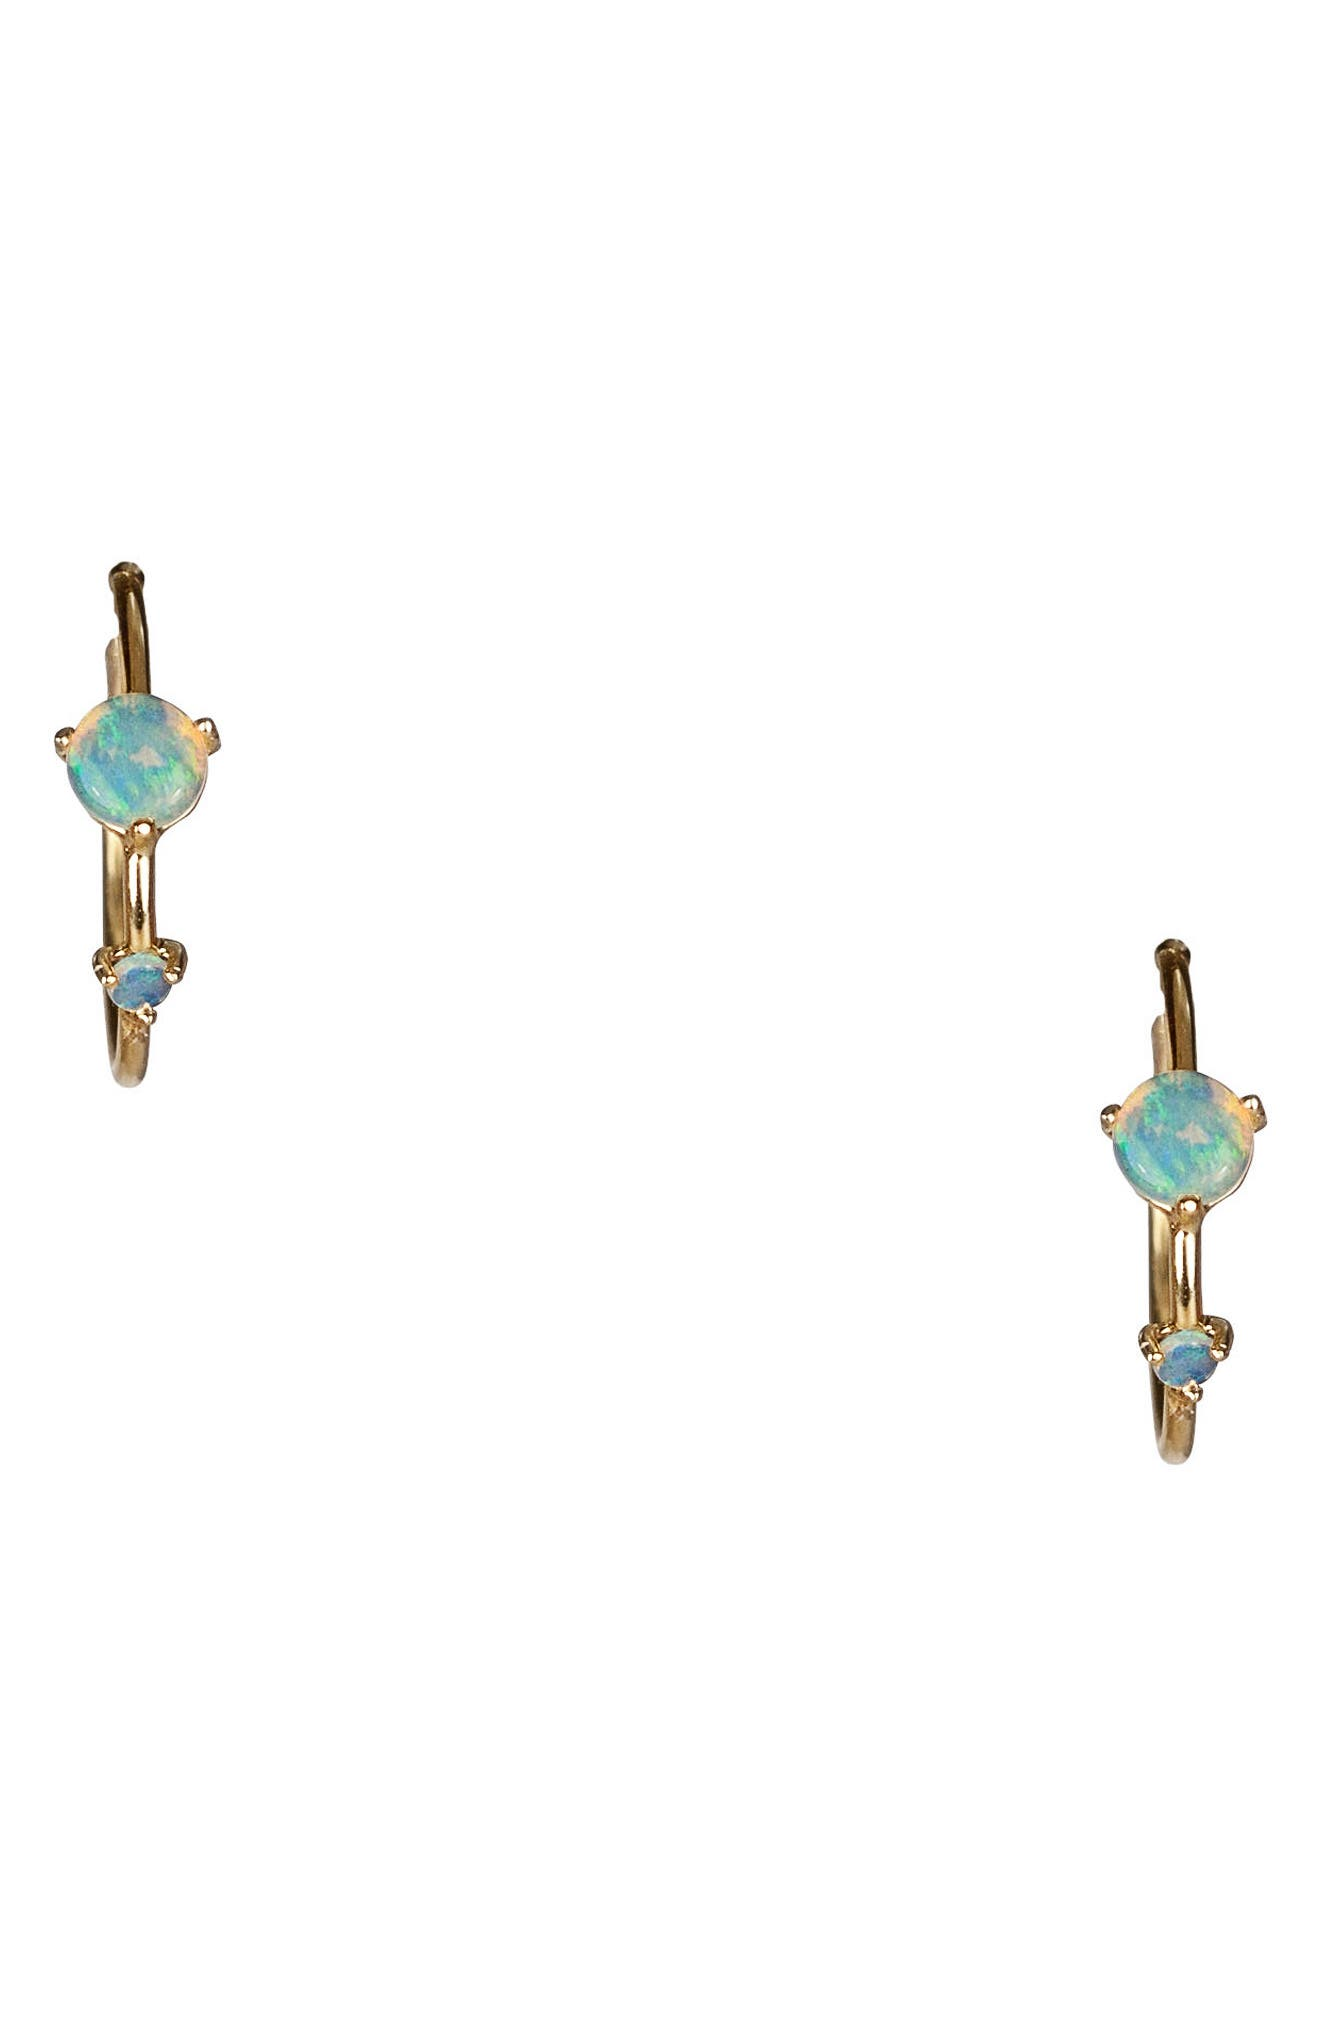 Counting Collection Small Two-Step Opal & Diamond Hoop Earrings,                             Main thumbnail 1, color,                             OPAL